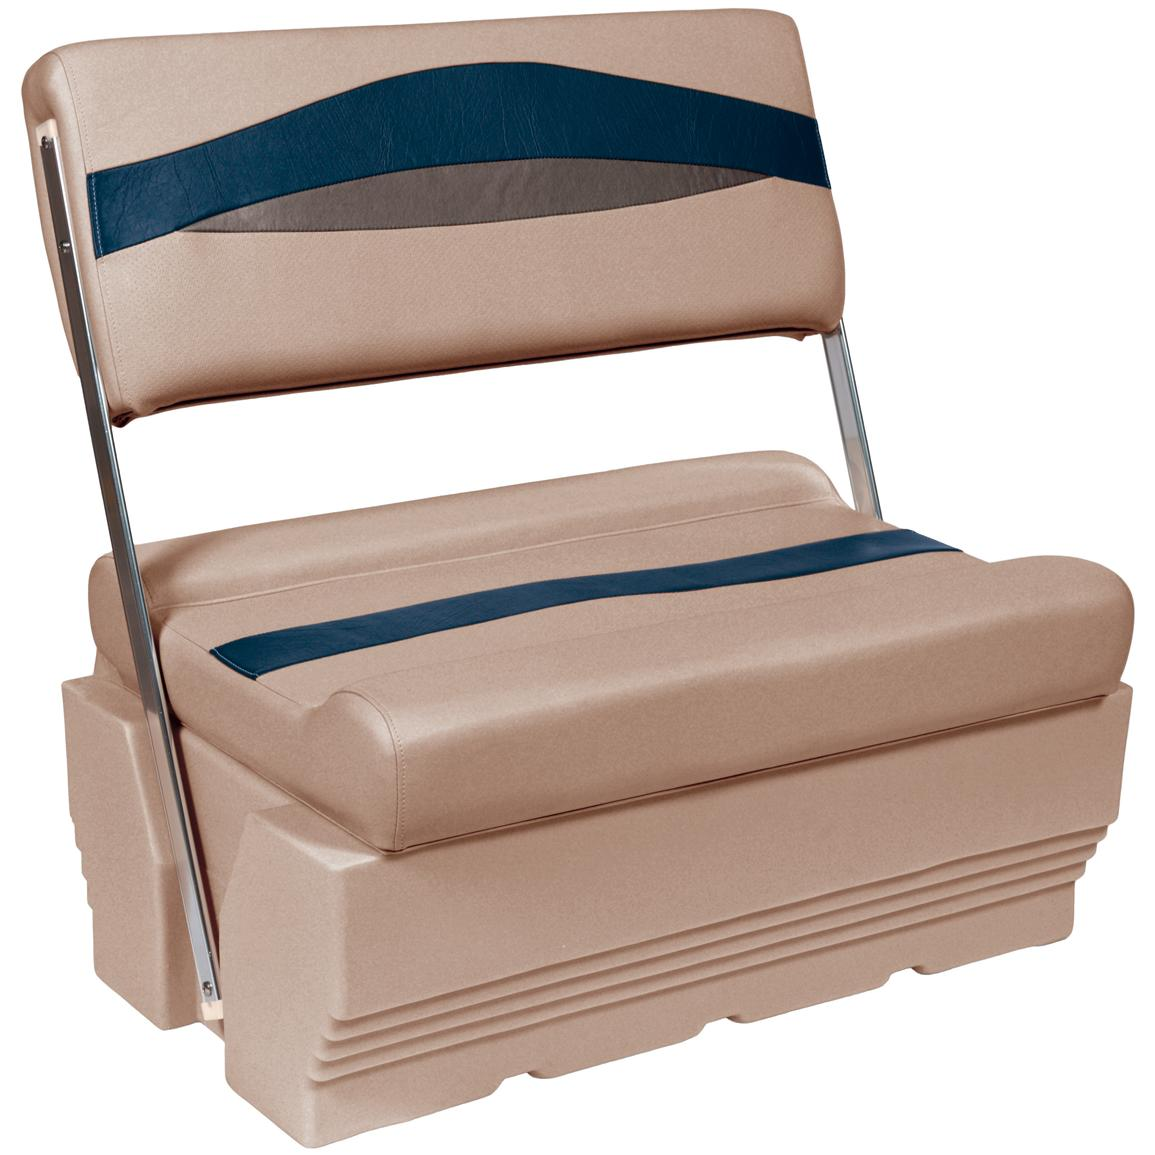 Wise® Premier 1100 Series Pontoon Flip-Flop Seat, Color D